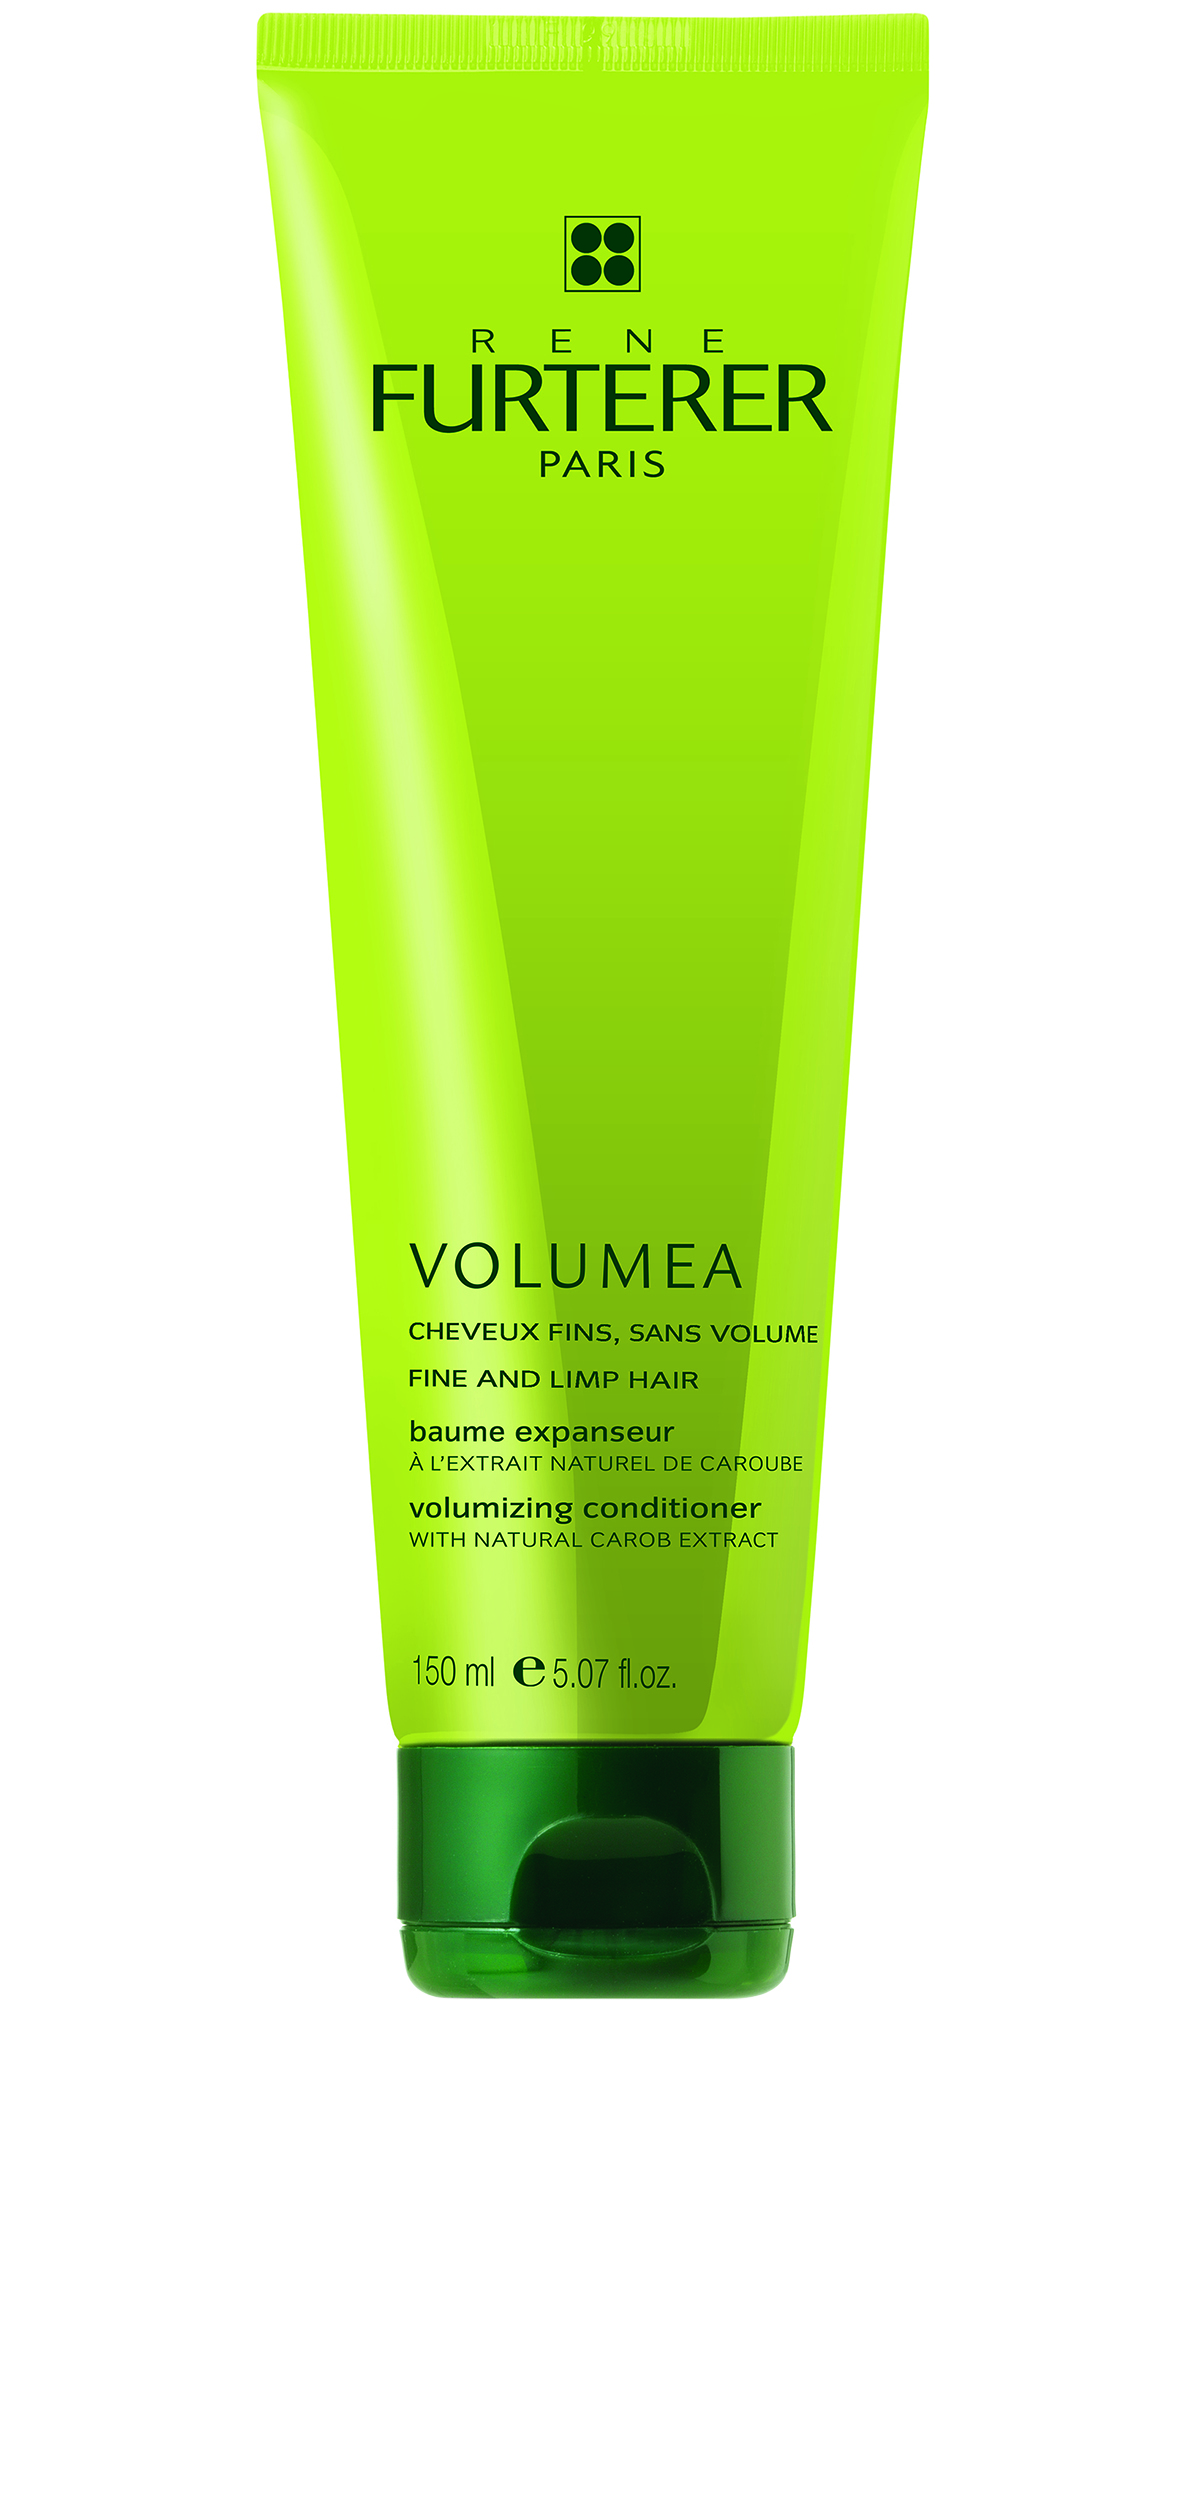 Rene Furterer Volumea Volumizing Conditioner contains natural carob to coat the hair shaft and enhance it by 11 percent, making it ideal for